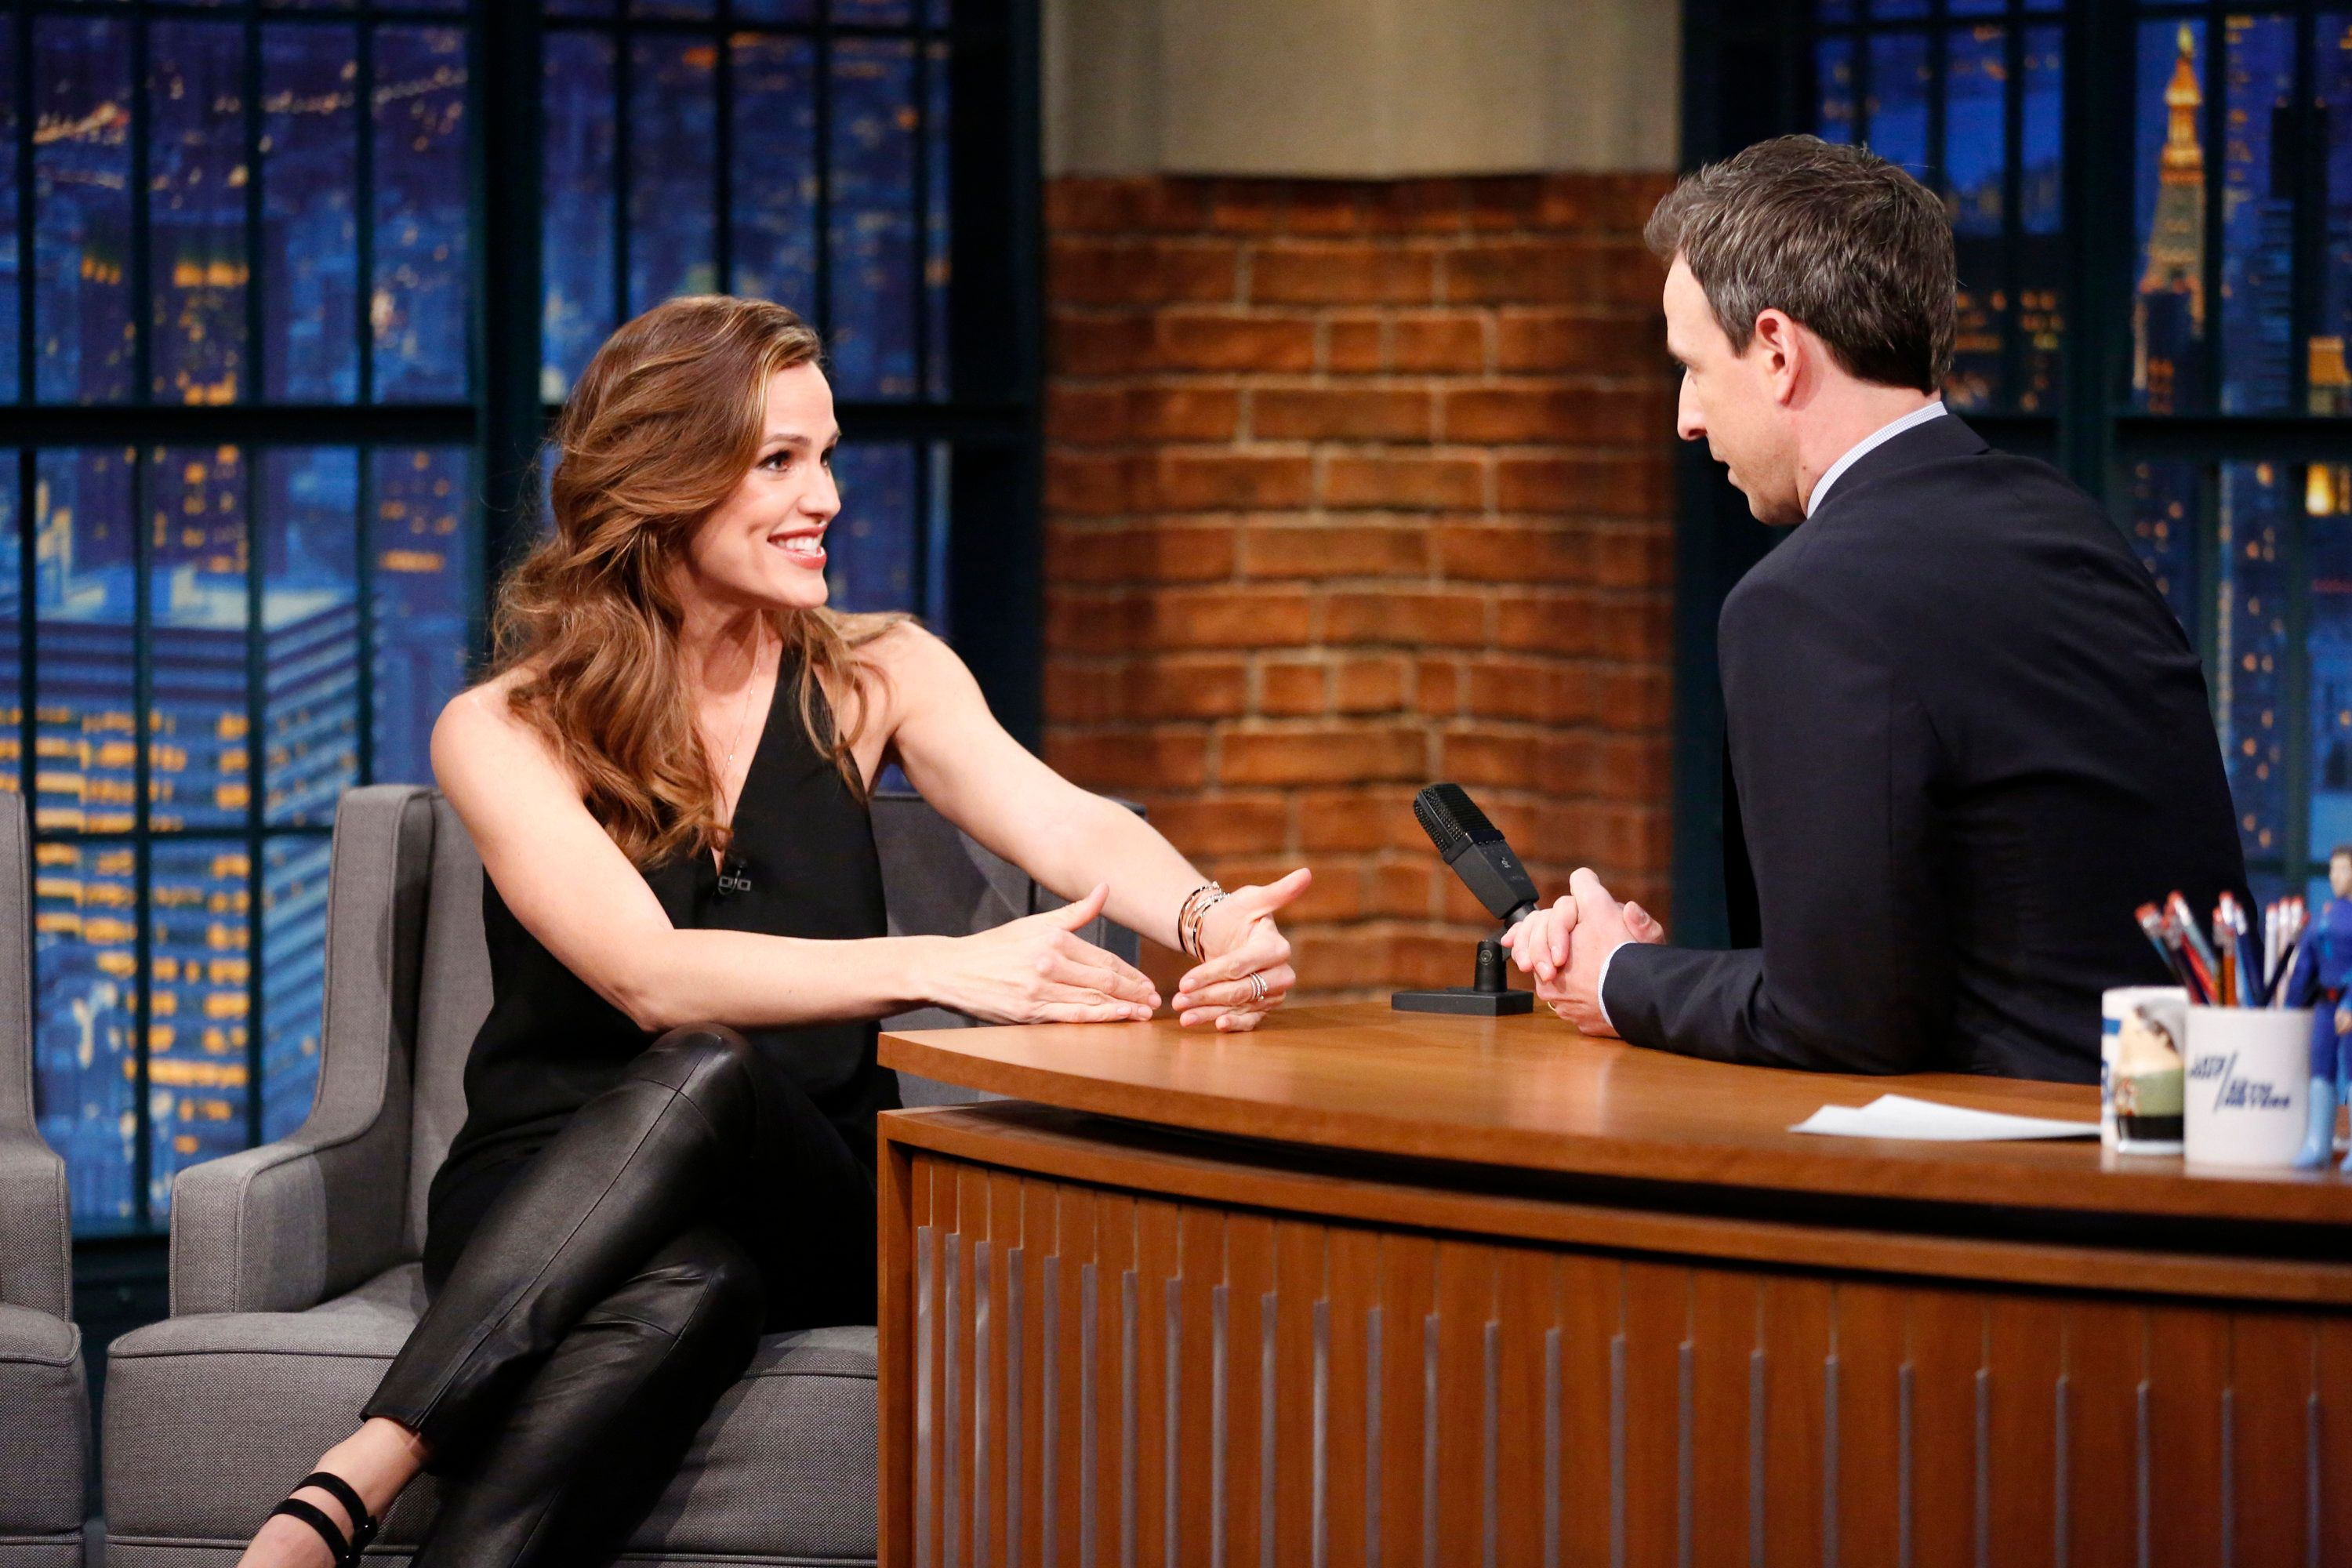 Jennifer Garner offered some honest parenting advice to soon-to-be dad Seth Meyers.